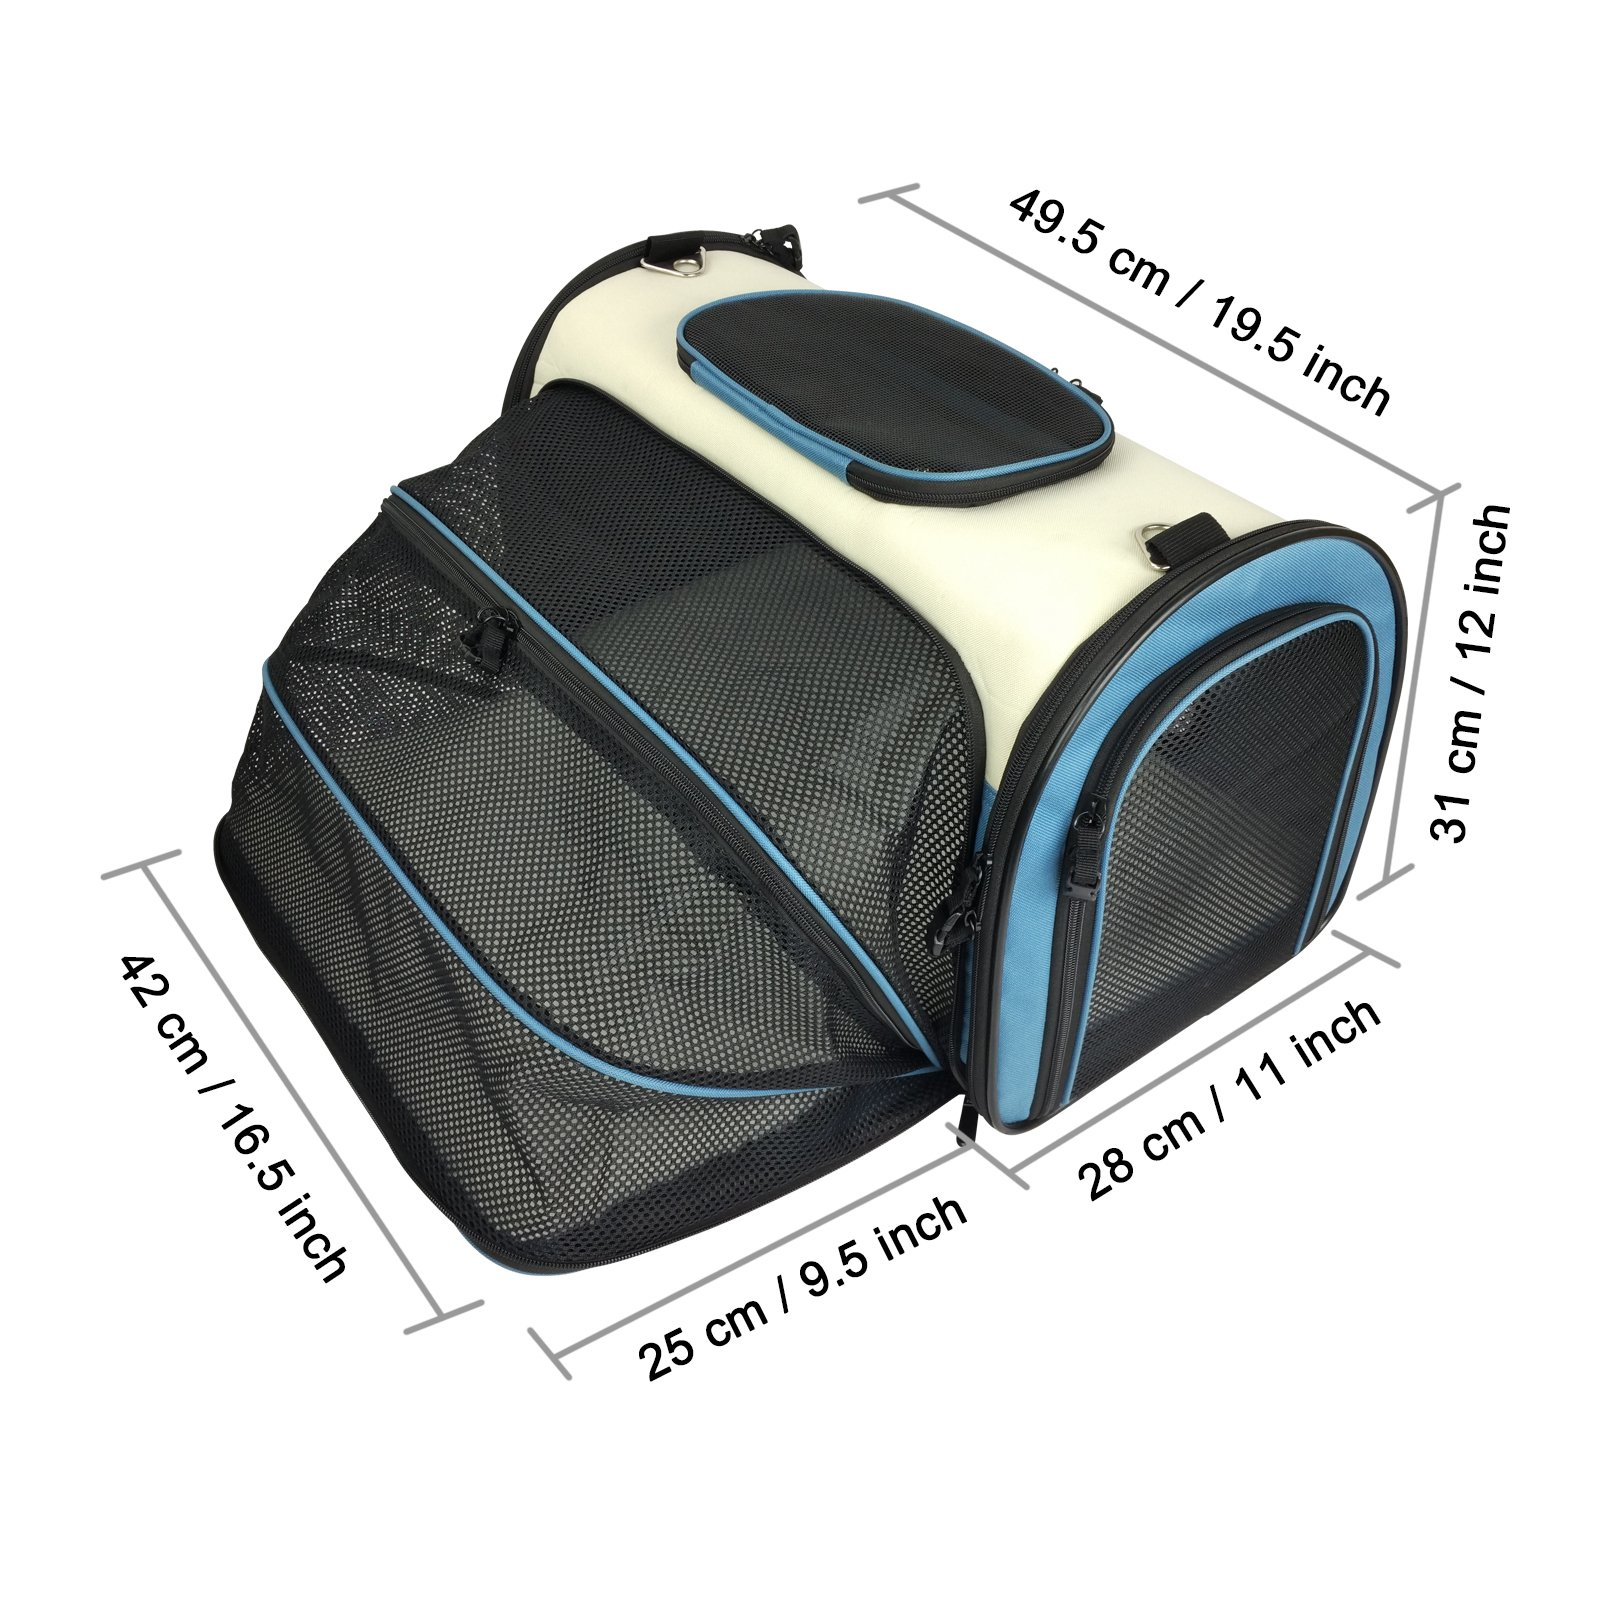 Becko Expandable Foldable Pet Carrier Travel Handbag with Padding and Extension (Blue)